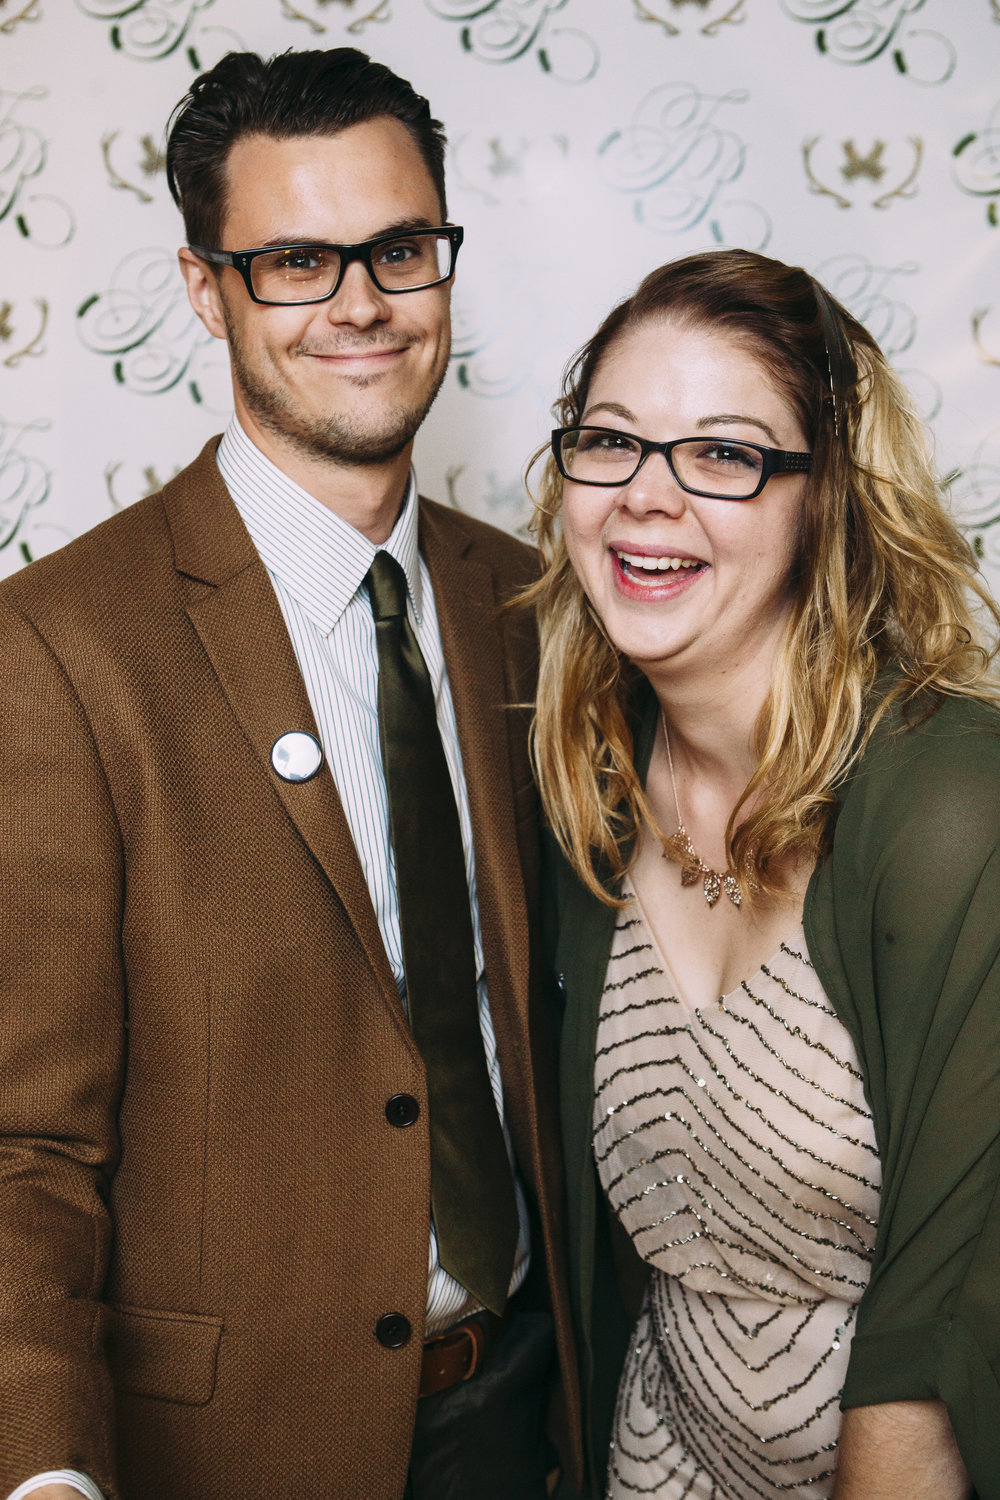 2016_10_08_Tralen_Doler_Randy_Goetz_Wedding_Catskills_PhotoBooth037.JPG